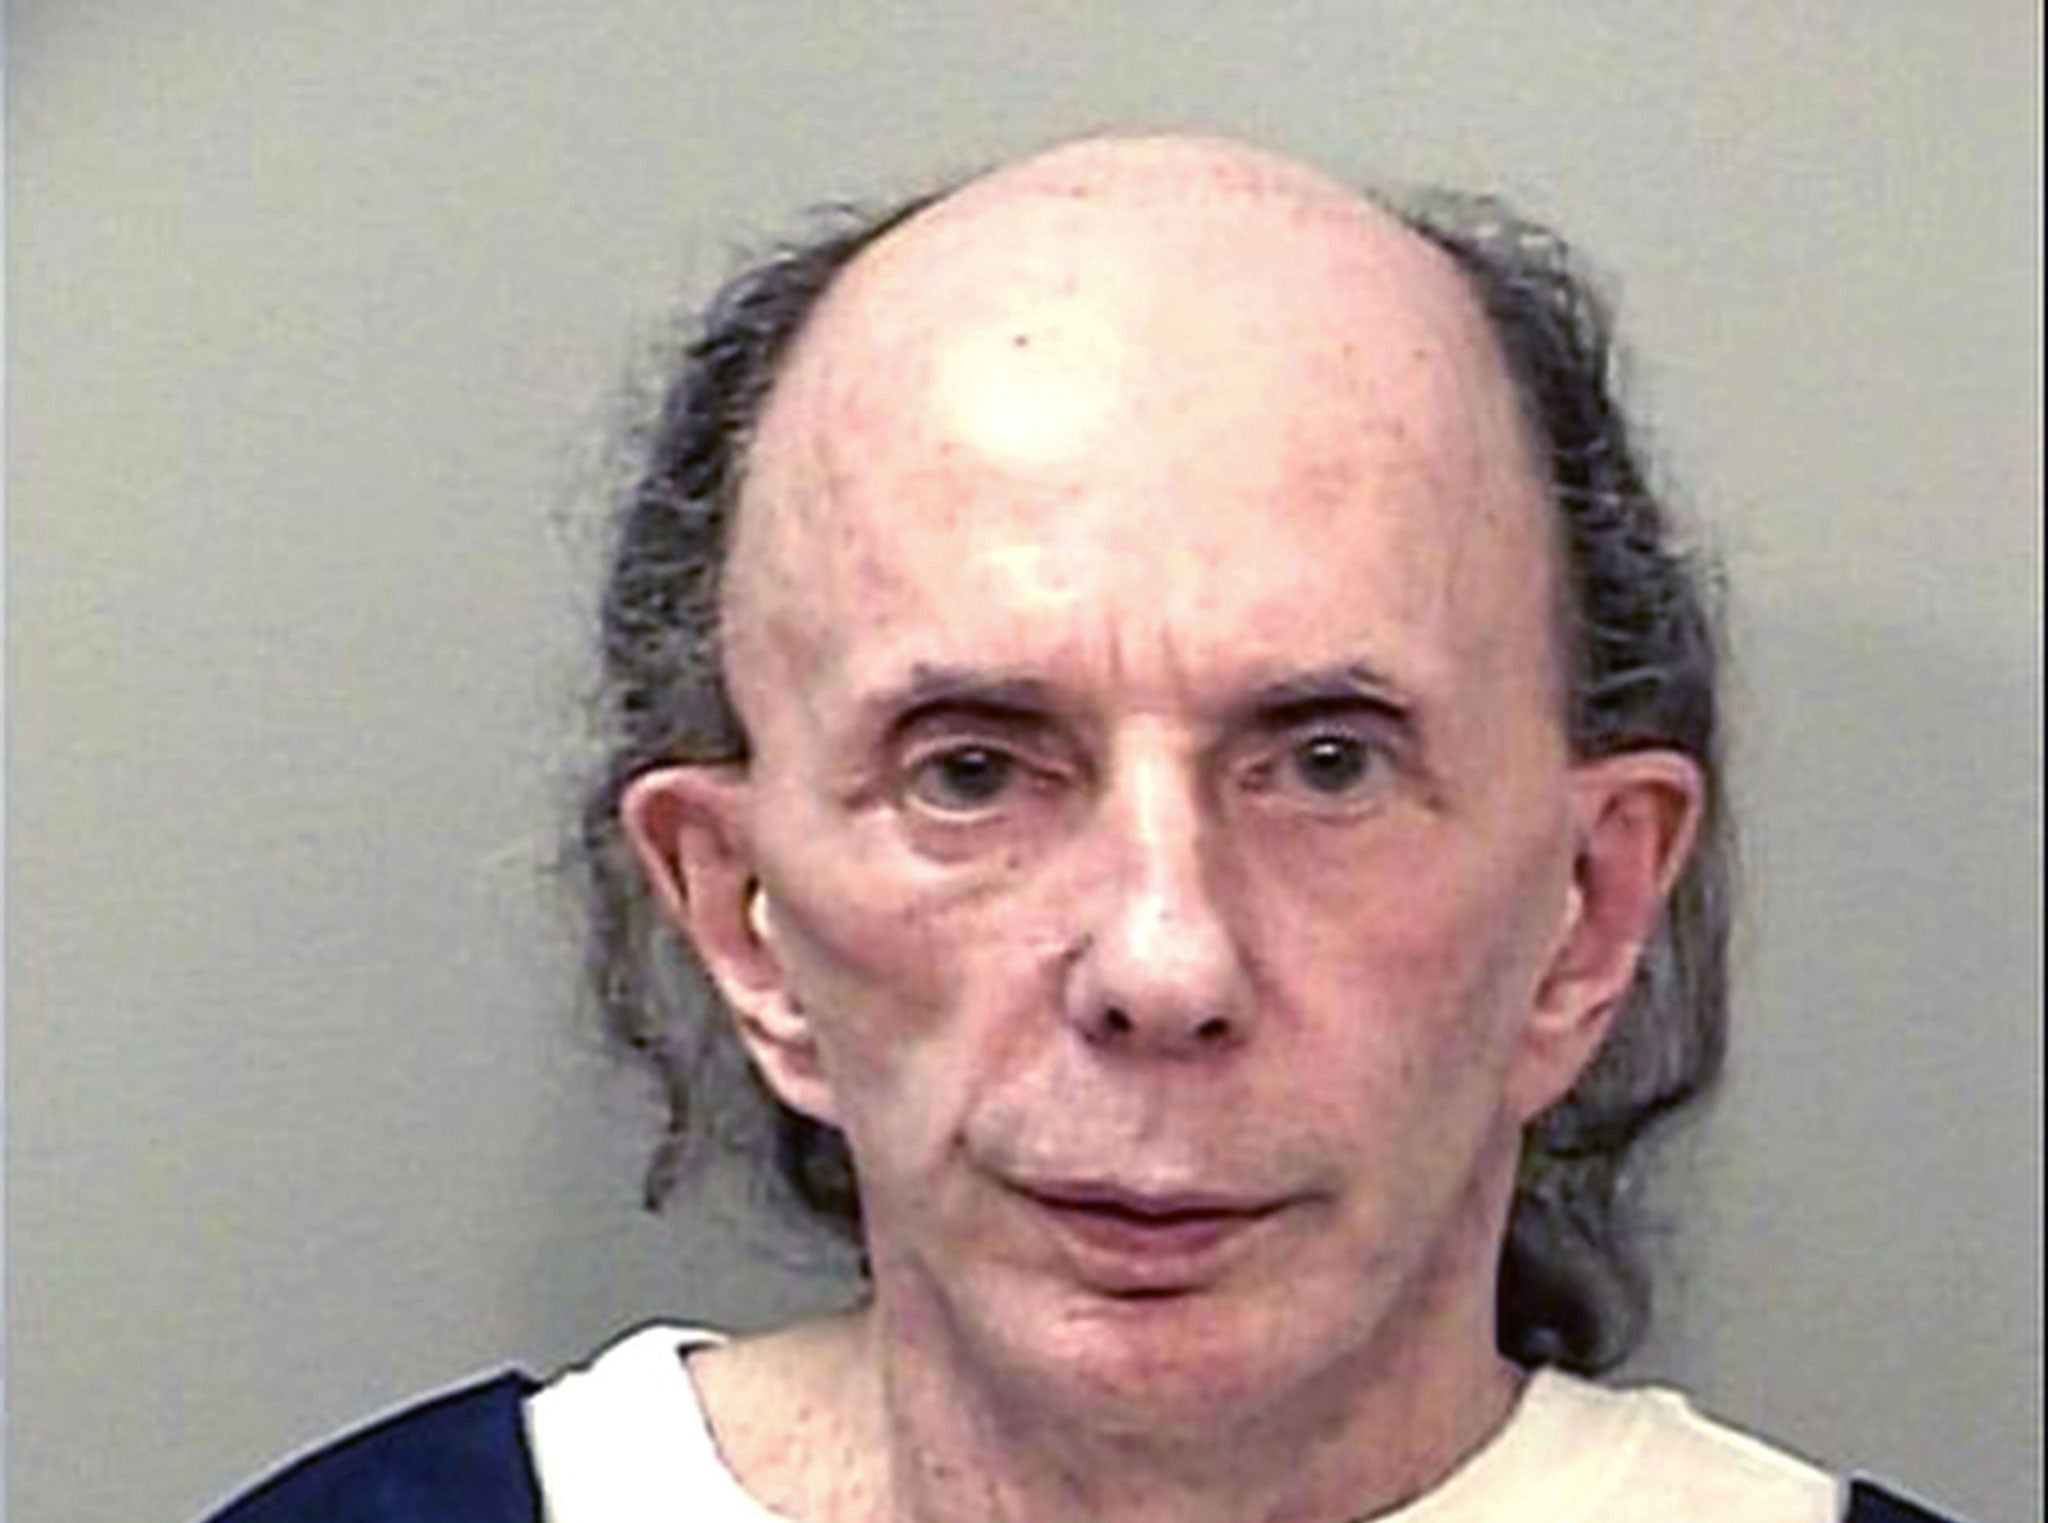 Phil spector murder trial now mostly about fingernails new images